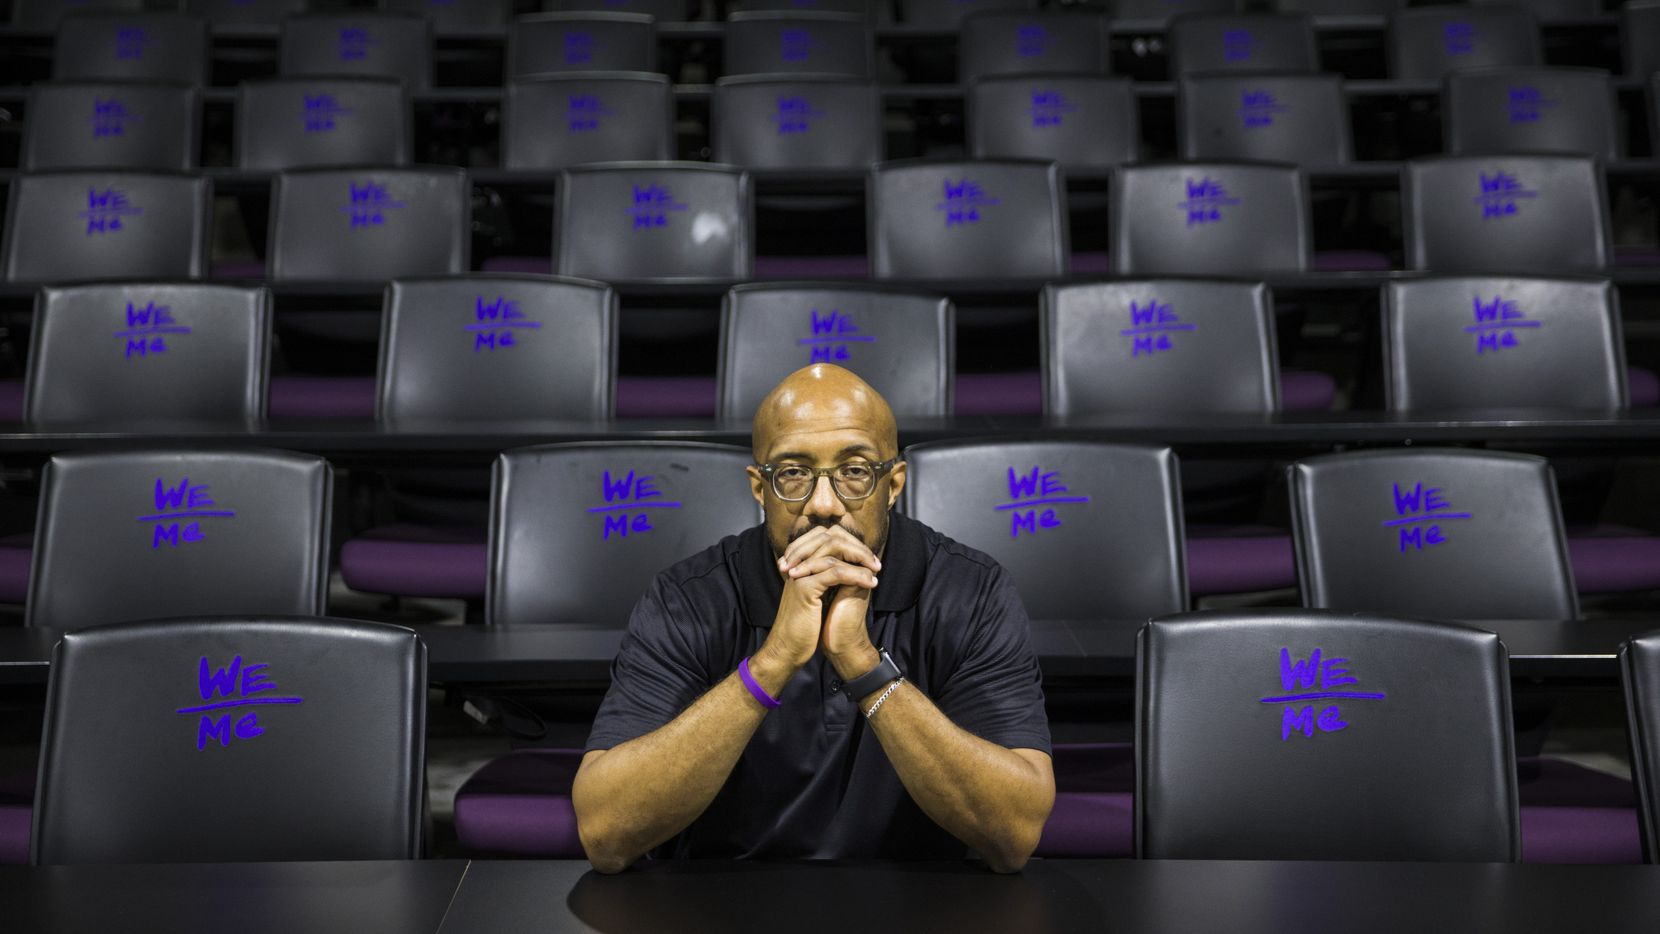 """Michael Sorrell, president of Paul Quinn College and photographed in one of the school's empty lecture halls, understands why so many of his students are devastated that classes are online, housing is shut down and commencement is postponed. """"It all comes back to the trauma that's permeated many of their lives for so many years,"""" he said."""